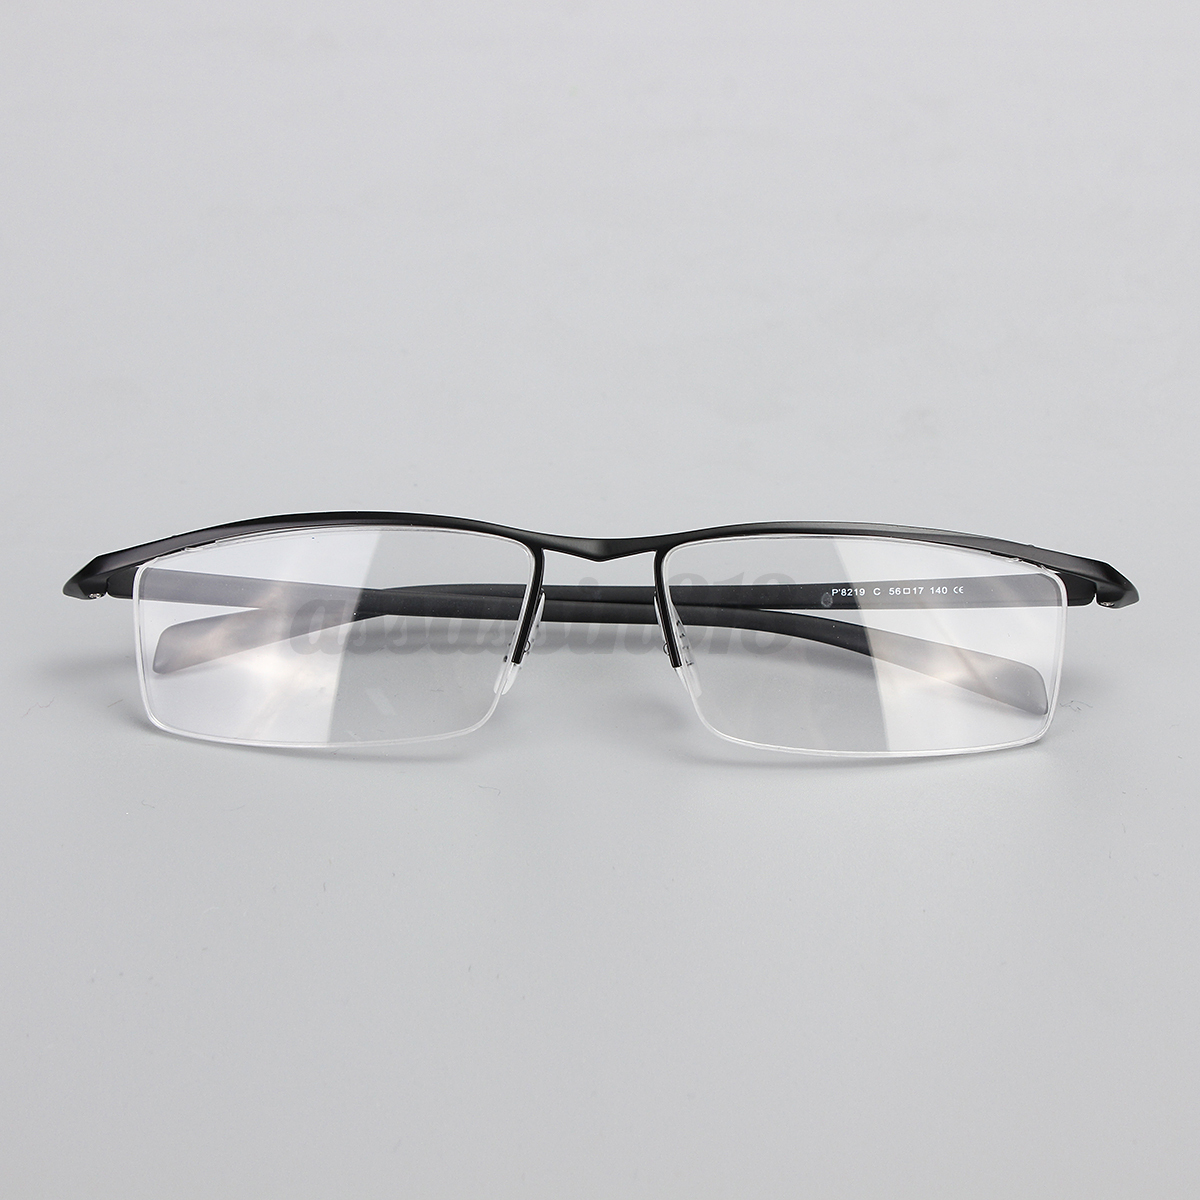 Rimless Glasses Titanium : Men Half Rimless Titanium Eyeglass Frame Spectacles ...